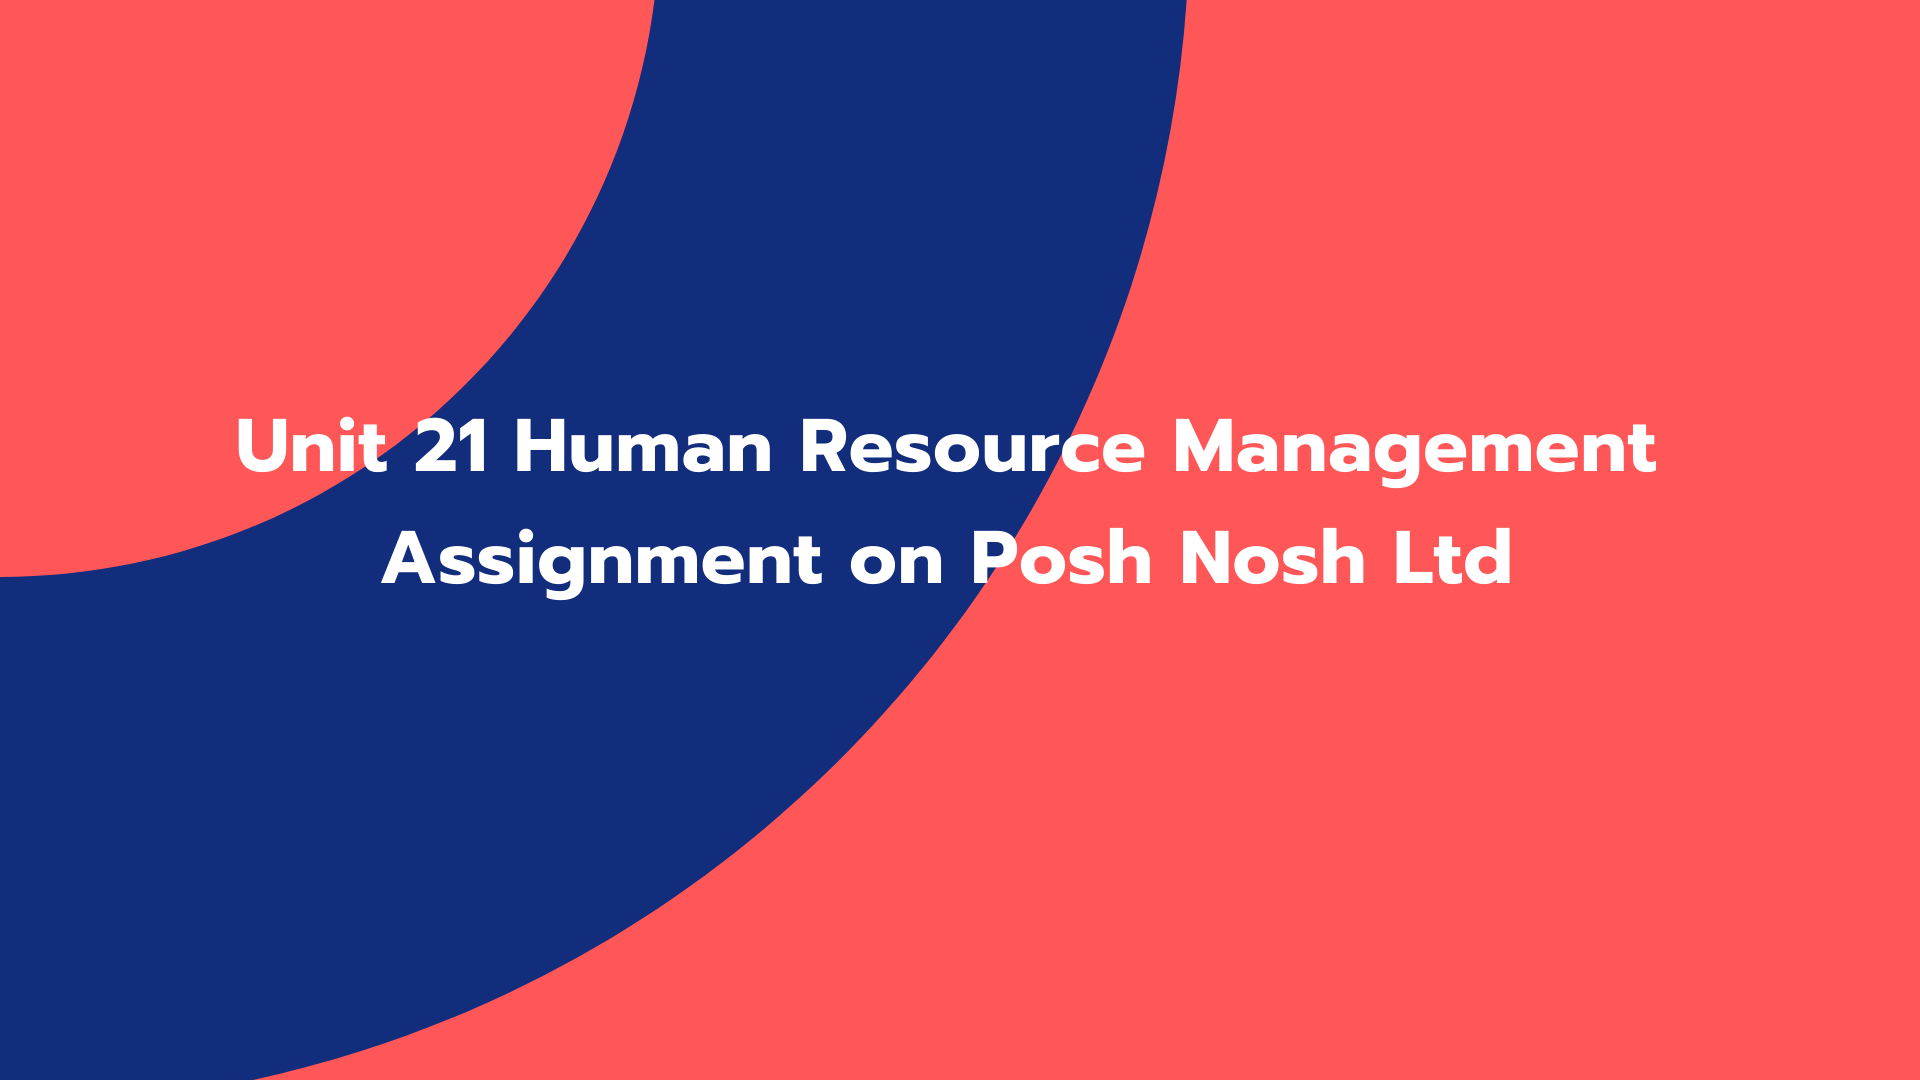 Unit 21 Human Resource Management Assignment on Posh Nosh Ltd